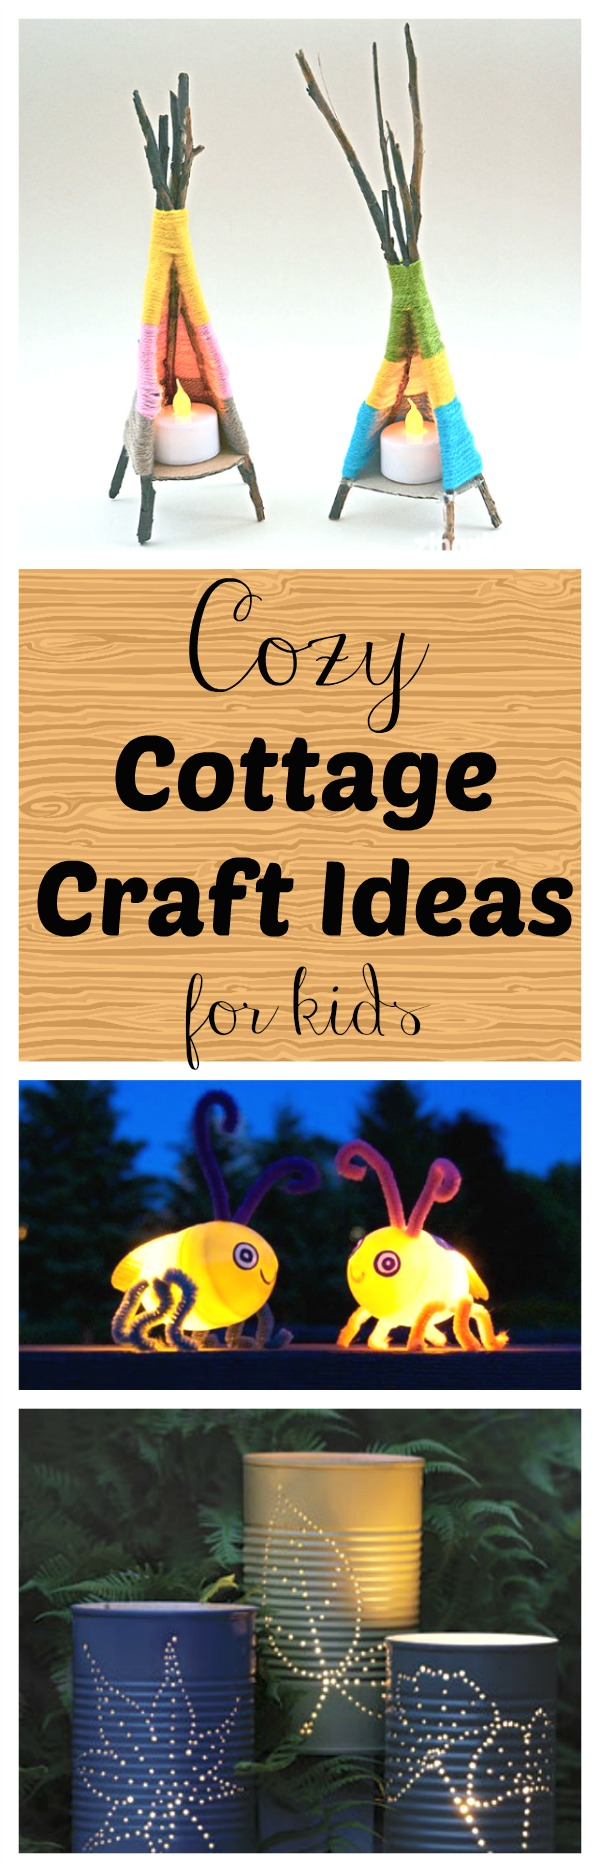 These summer craft ideas are perfect to do at the cottage. Great ideas for summer fun for preschoolers and big kids!